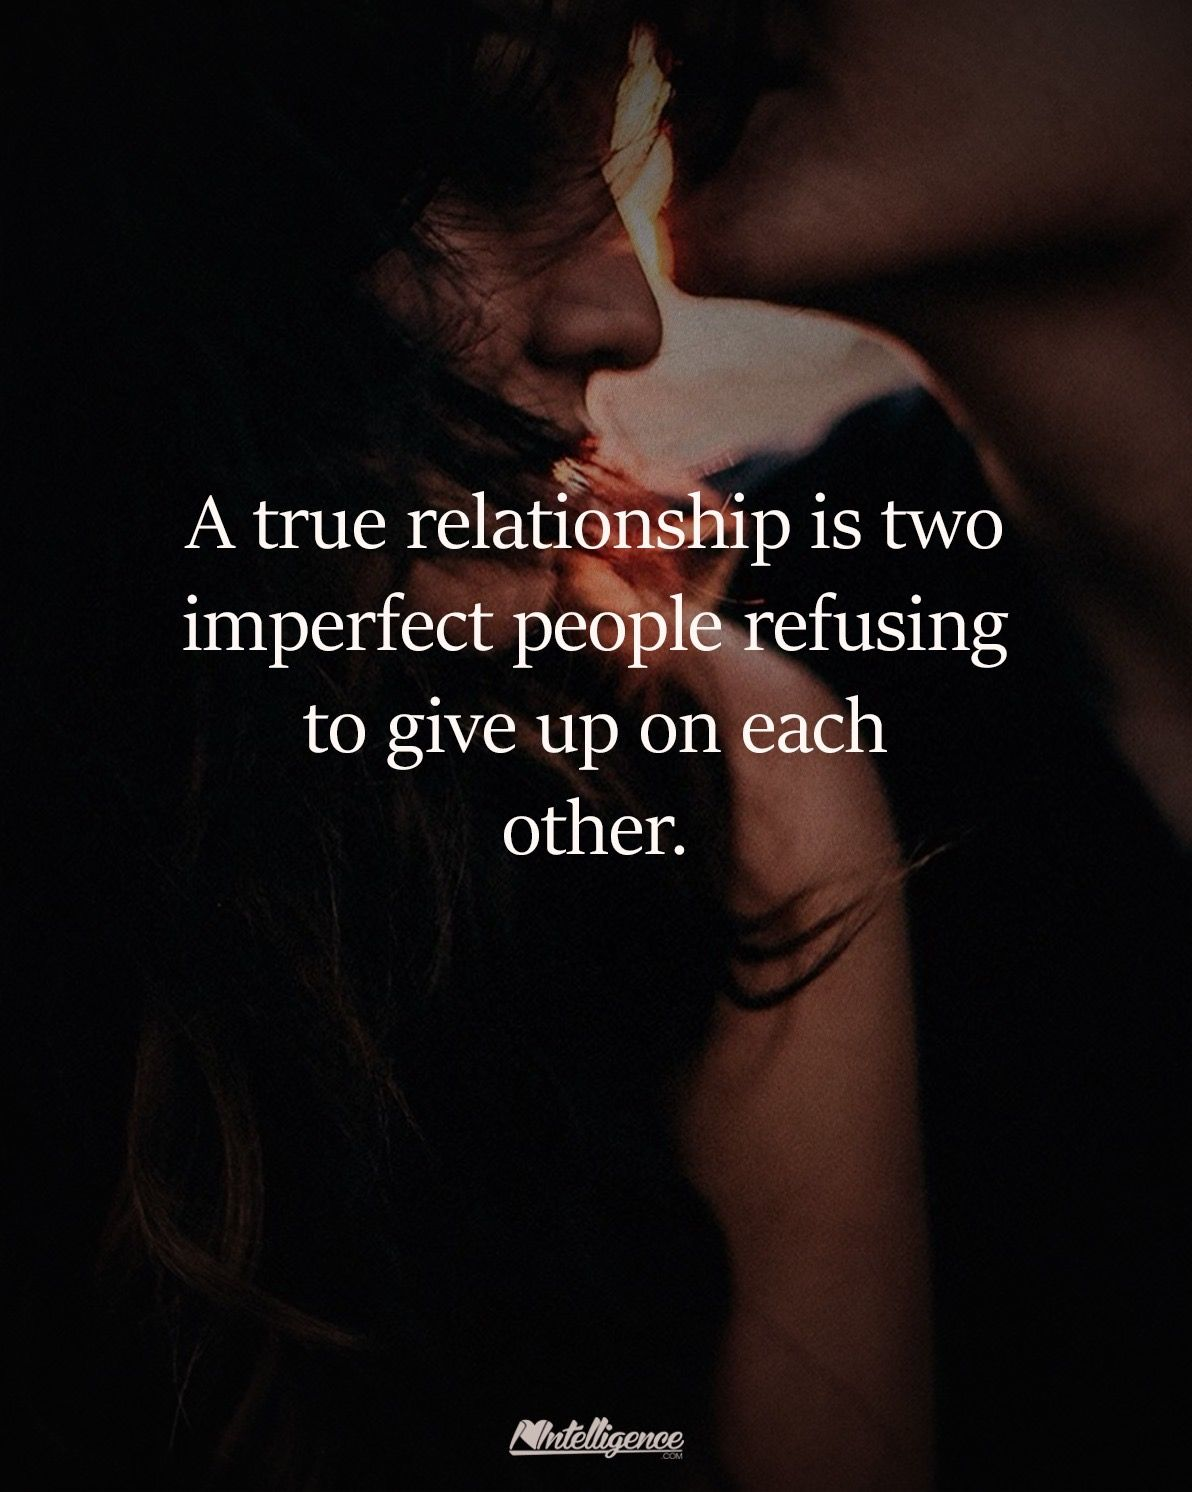 Pin By Khan On Strength True Relationship Forbidden Love Quotes Memes Quotes